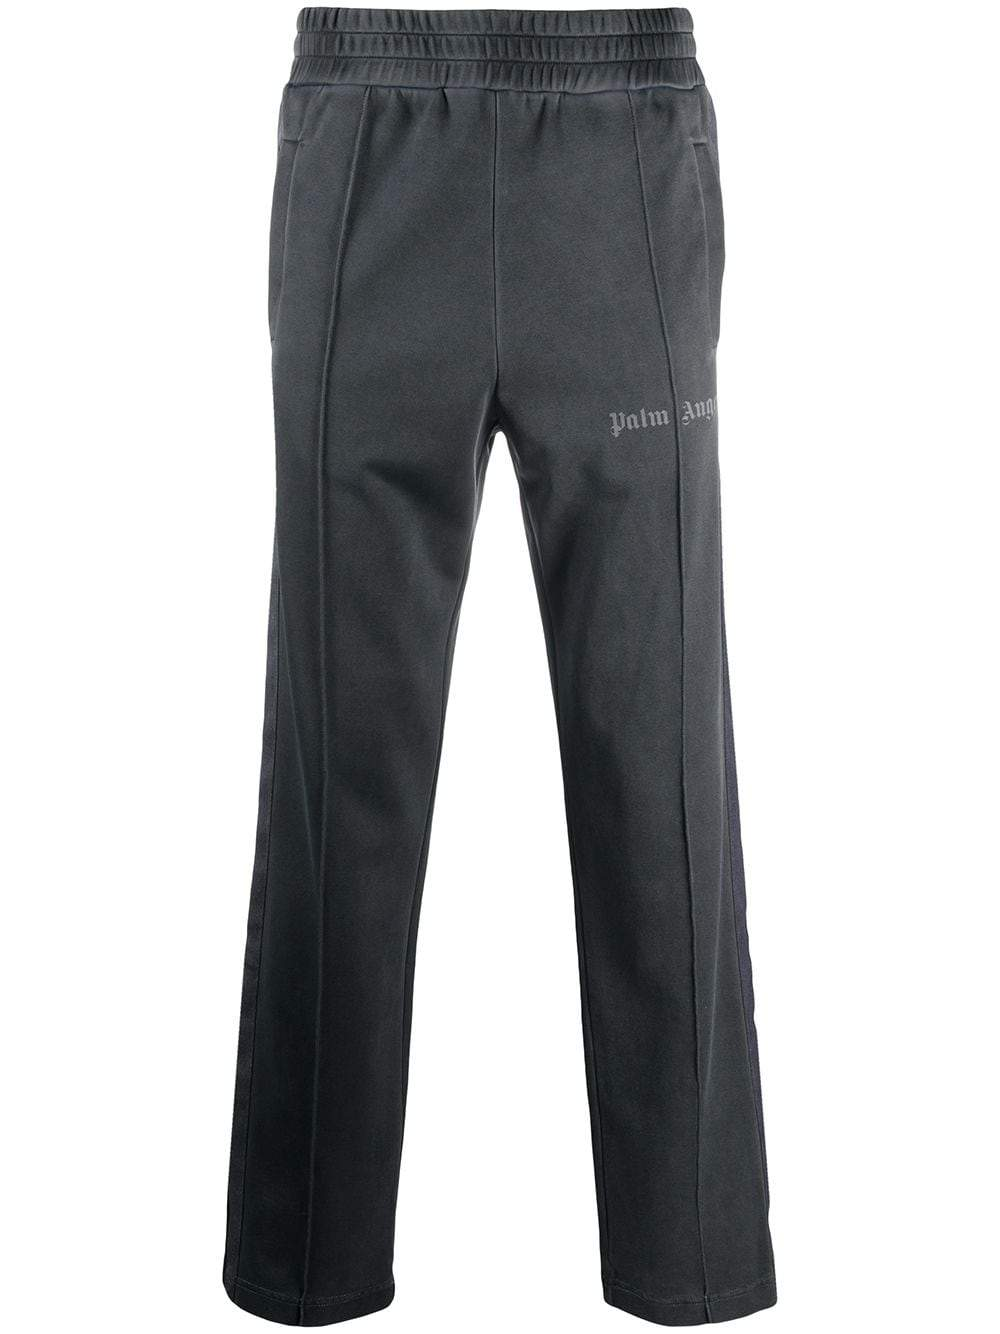 PALM ANGELS Garment Dyed Track Pants Black